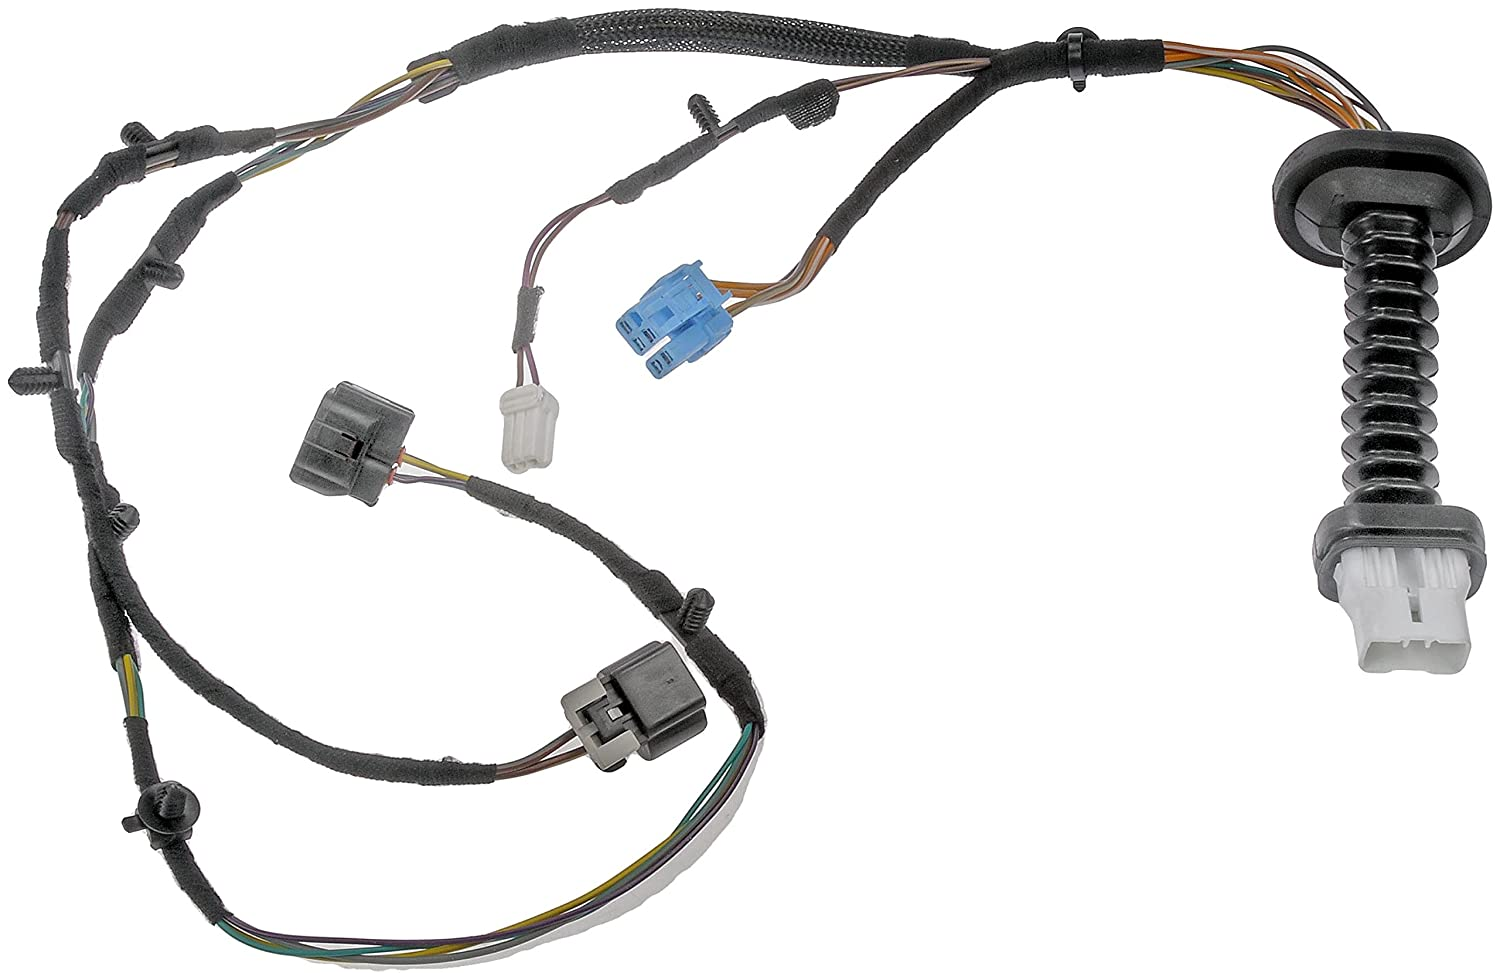 81c1LCEp7lL._SL1500_ amazon com dorman 645 506 door harness with connectors automotive Dodge Transmission Wiring Harness at gsmx.co